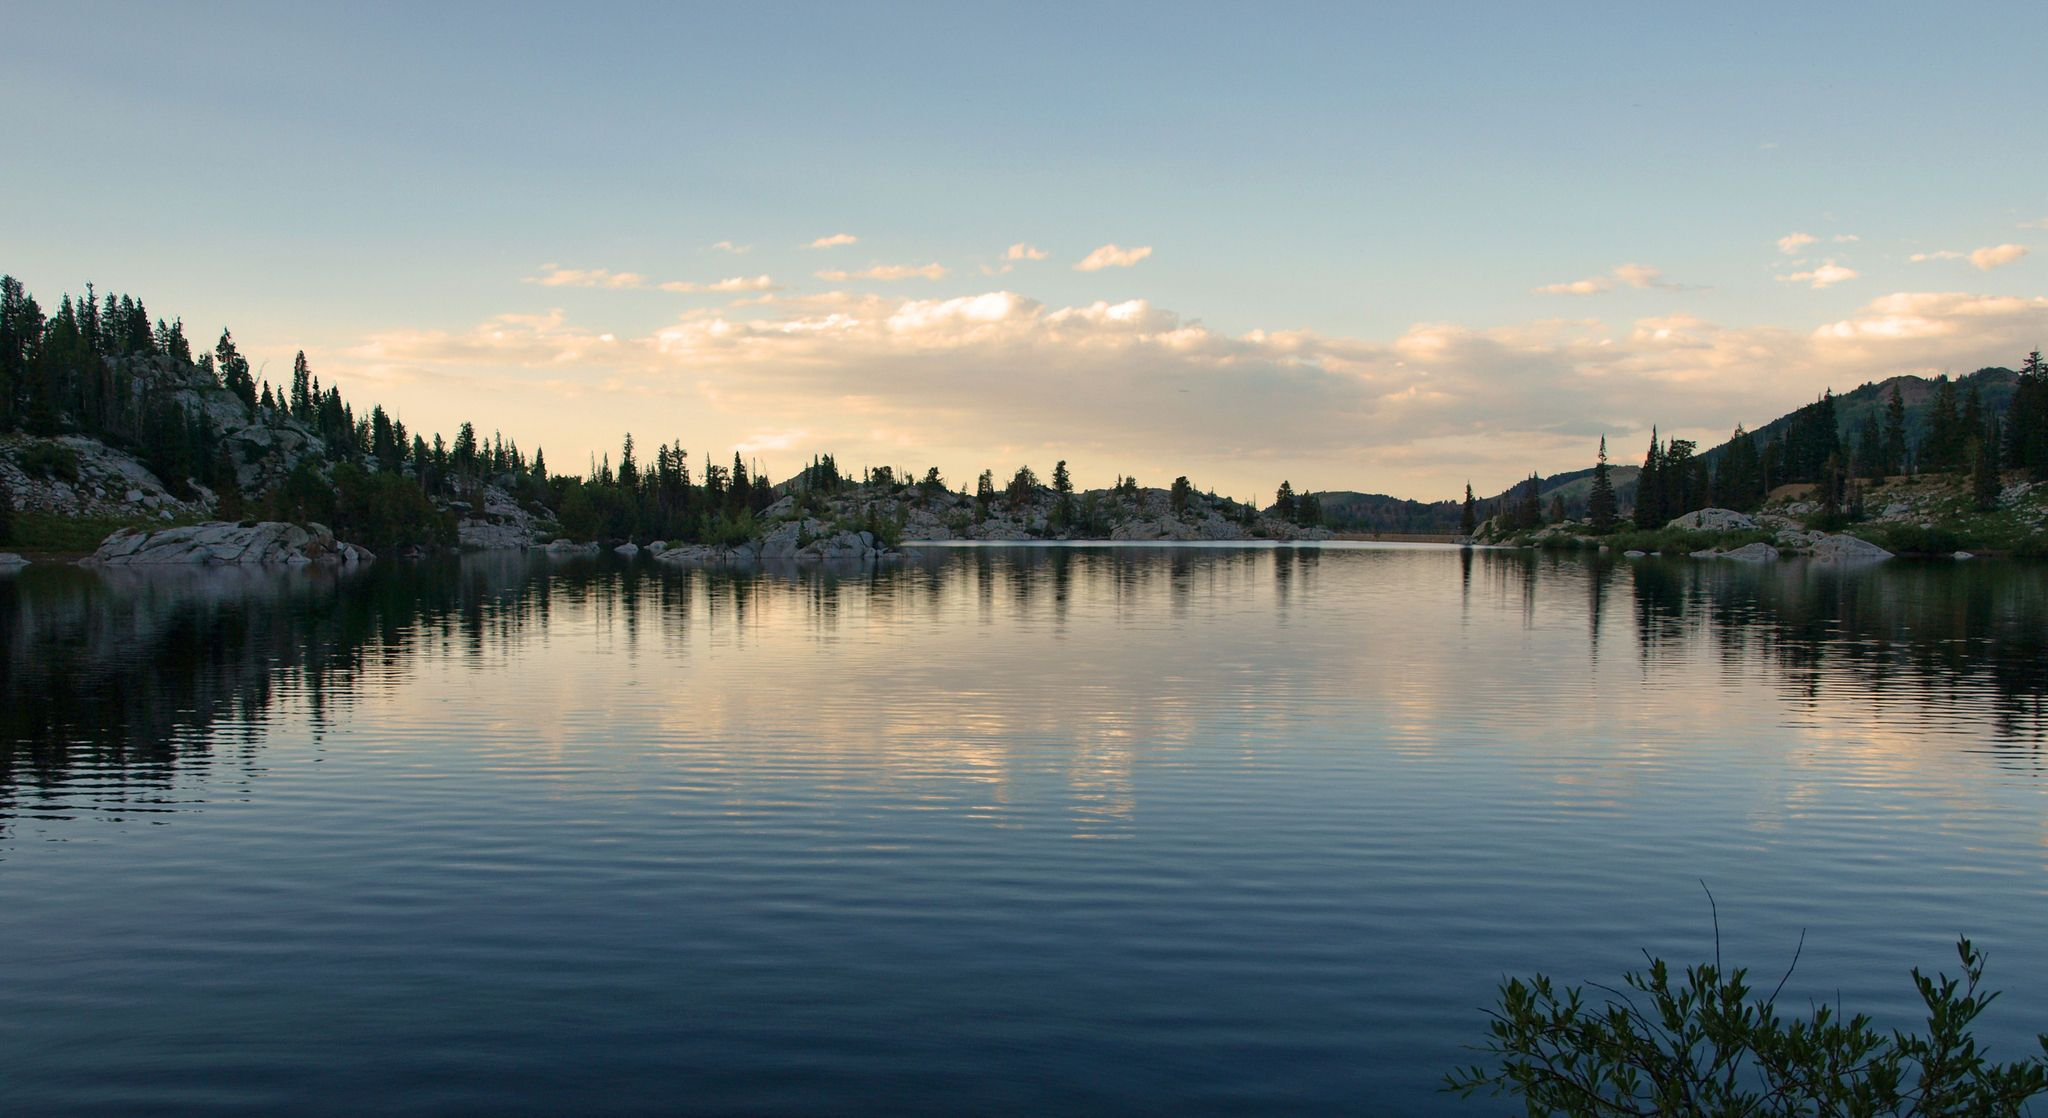 Lake Mary Trail Is A 2 Mile Out And Back Trail Located Near Salt Lake City Utah That Features A River And Is Good For All Skill Levels T Lake Mary